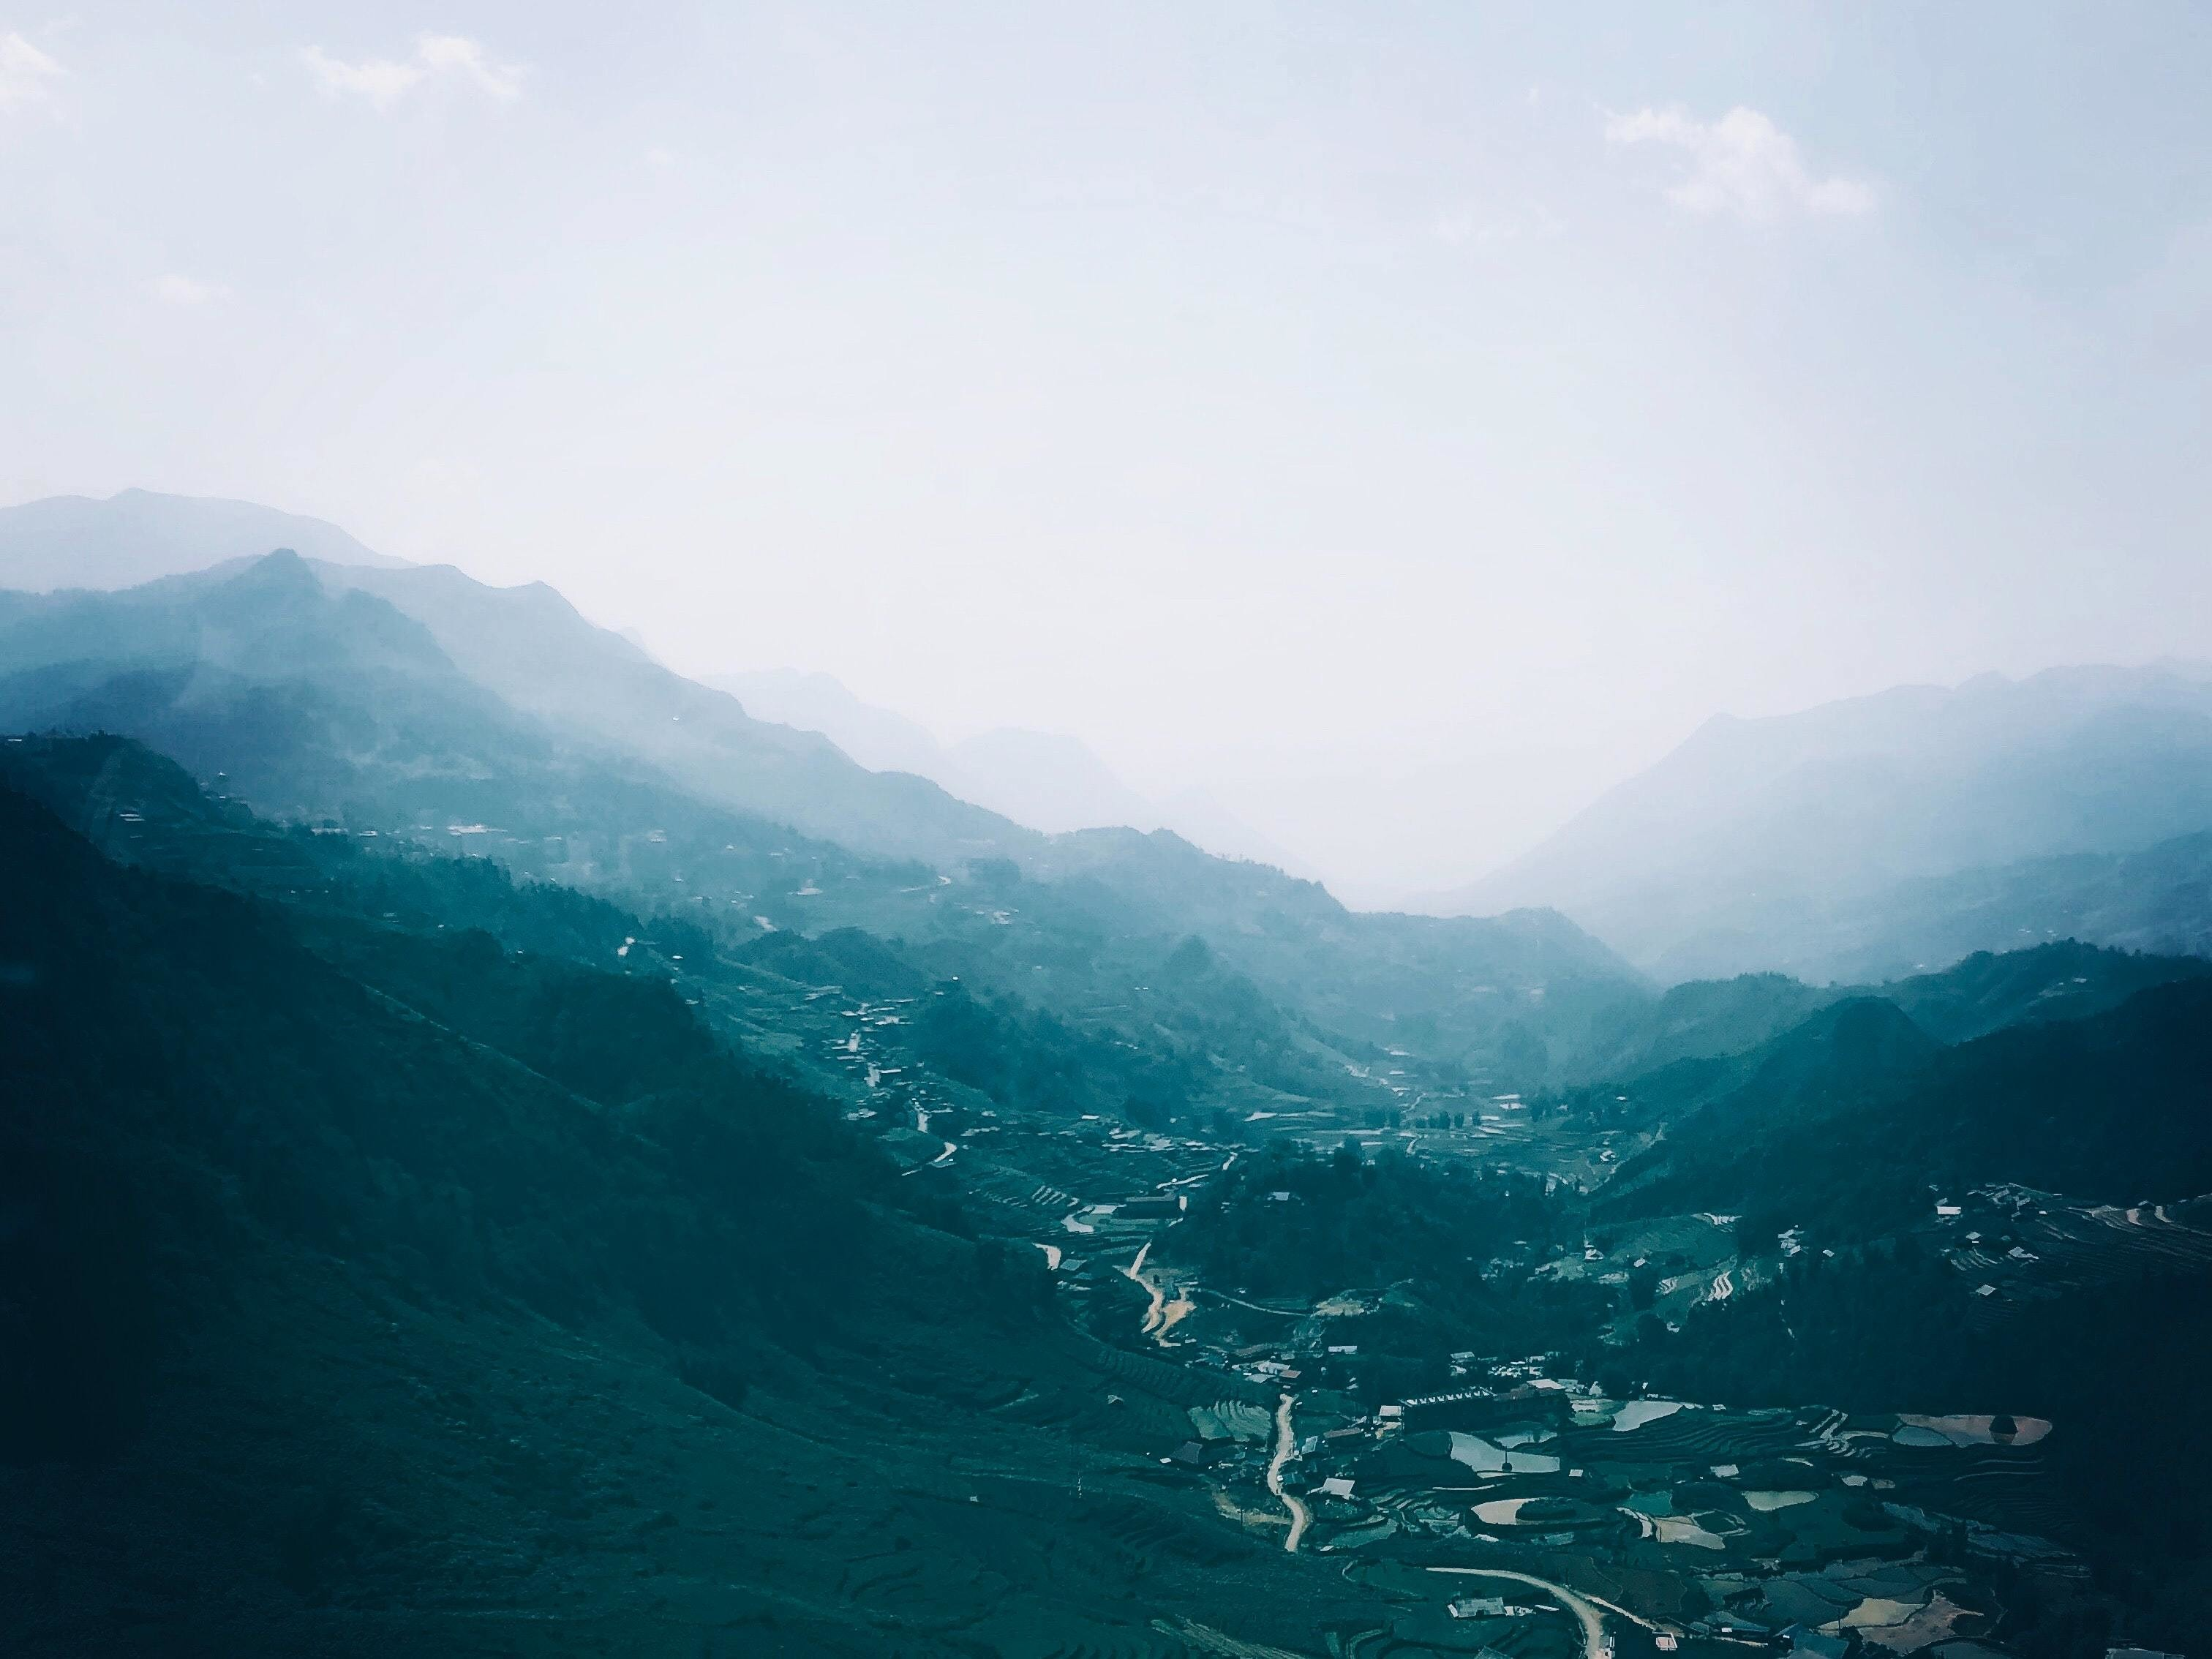 Patient capital has unlocked new hydropower projects in Lao Cai province, Viet Nam